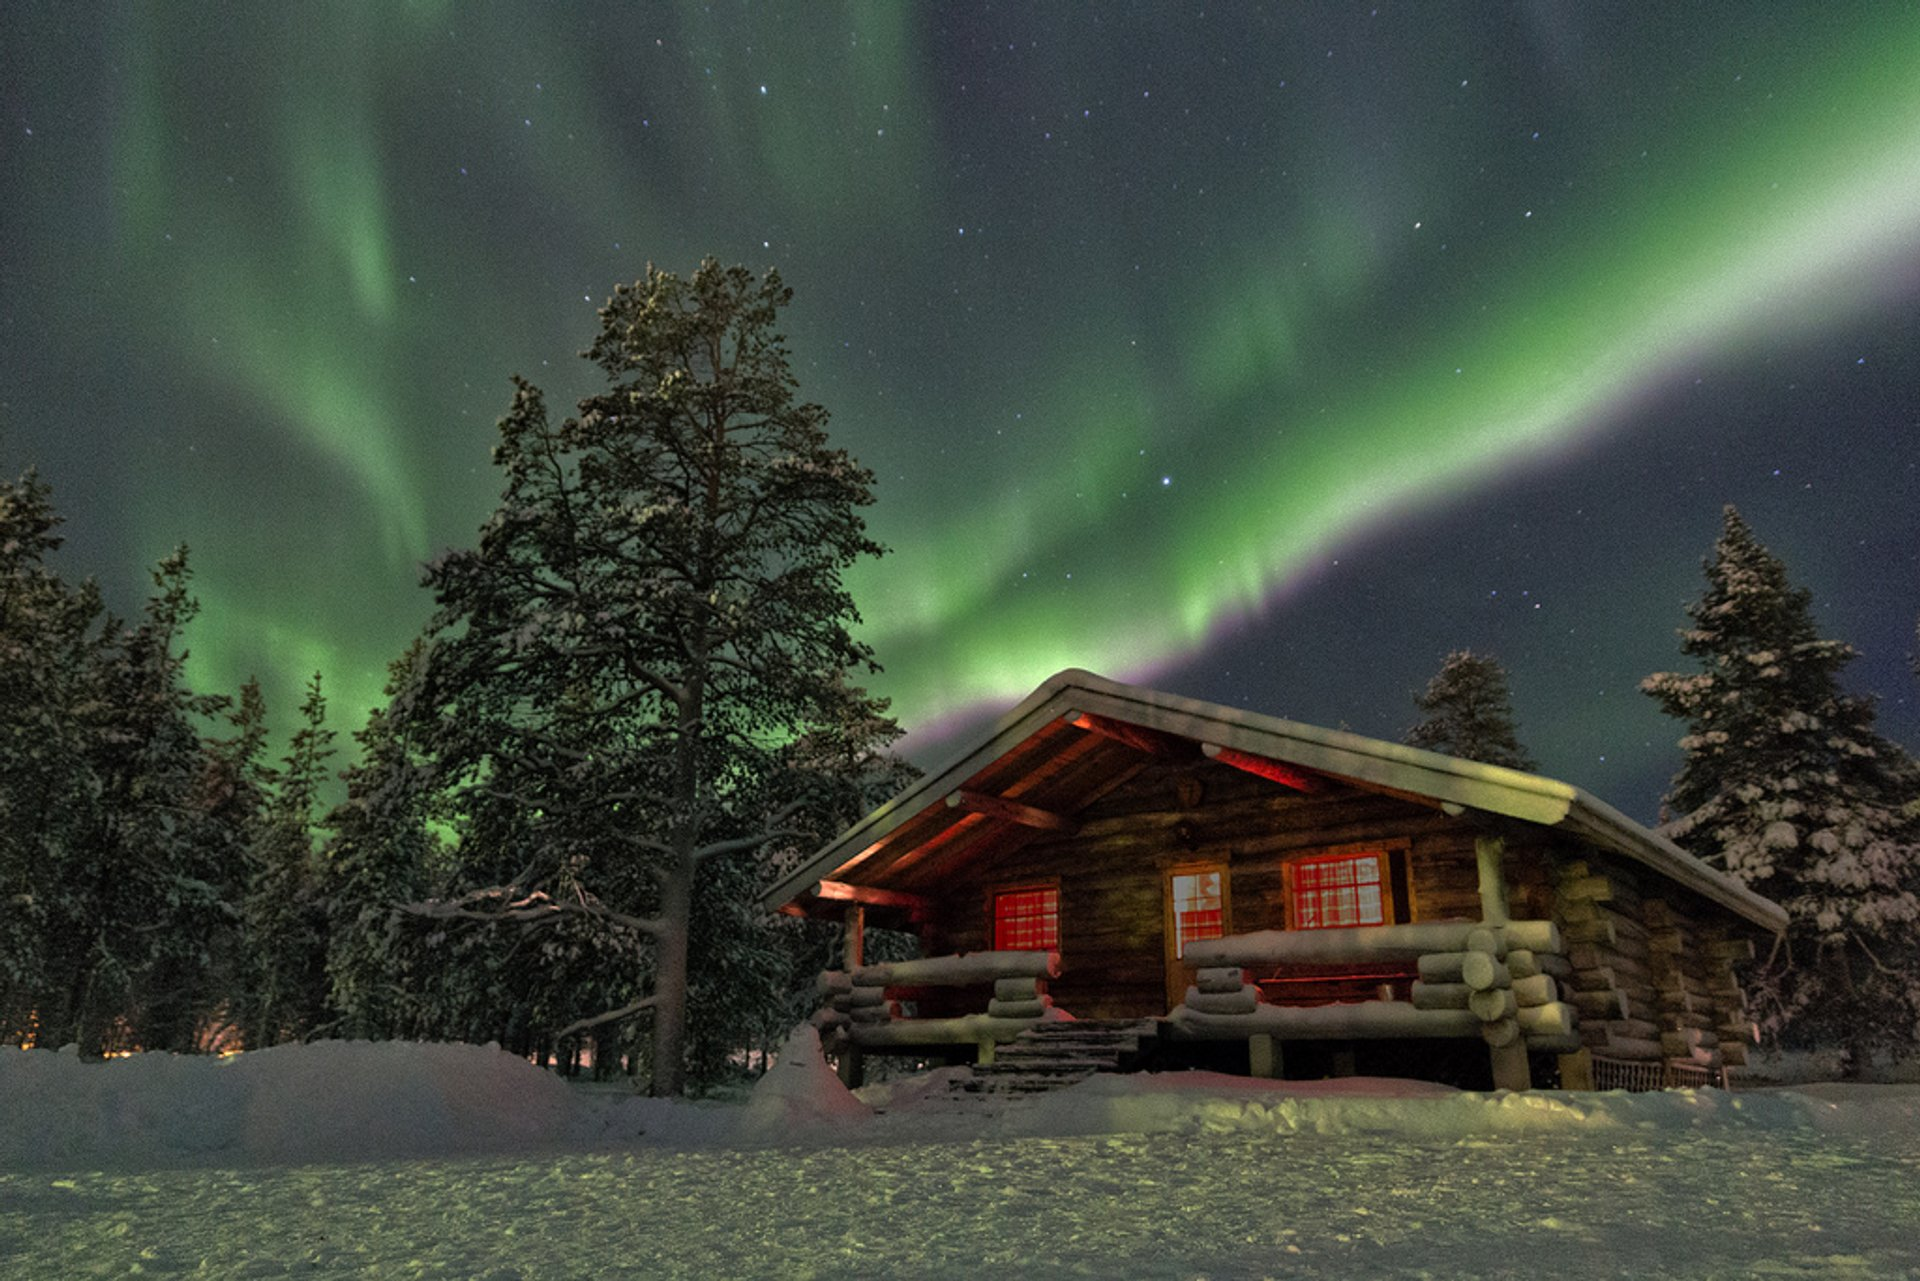 Best time for Northern Lights in Finland 2020